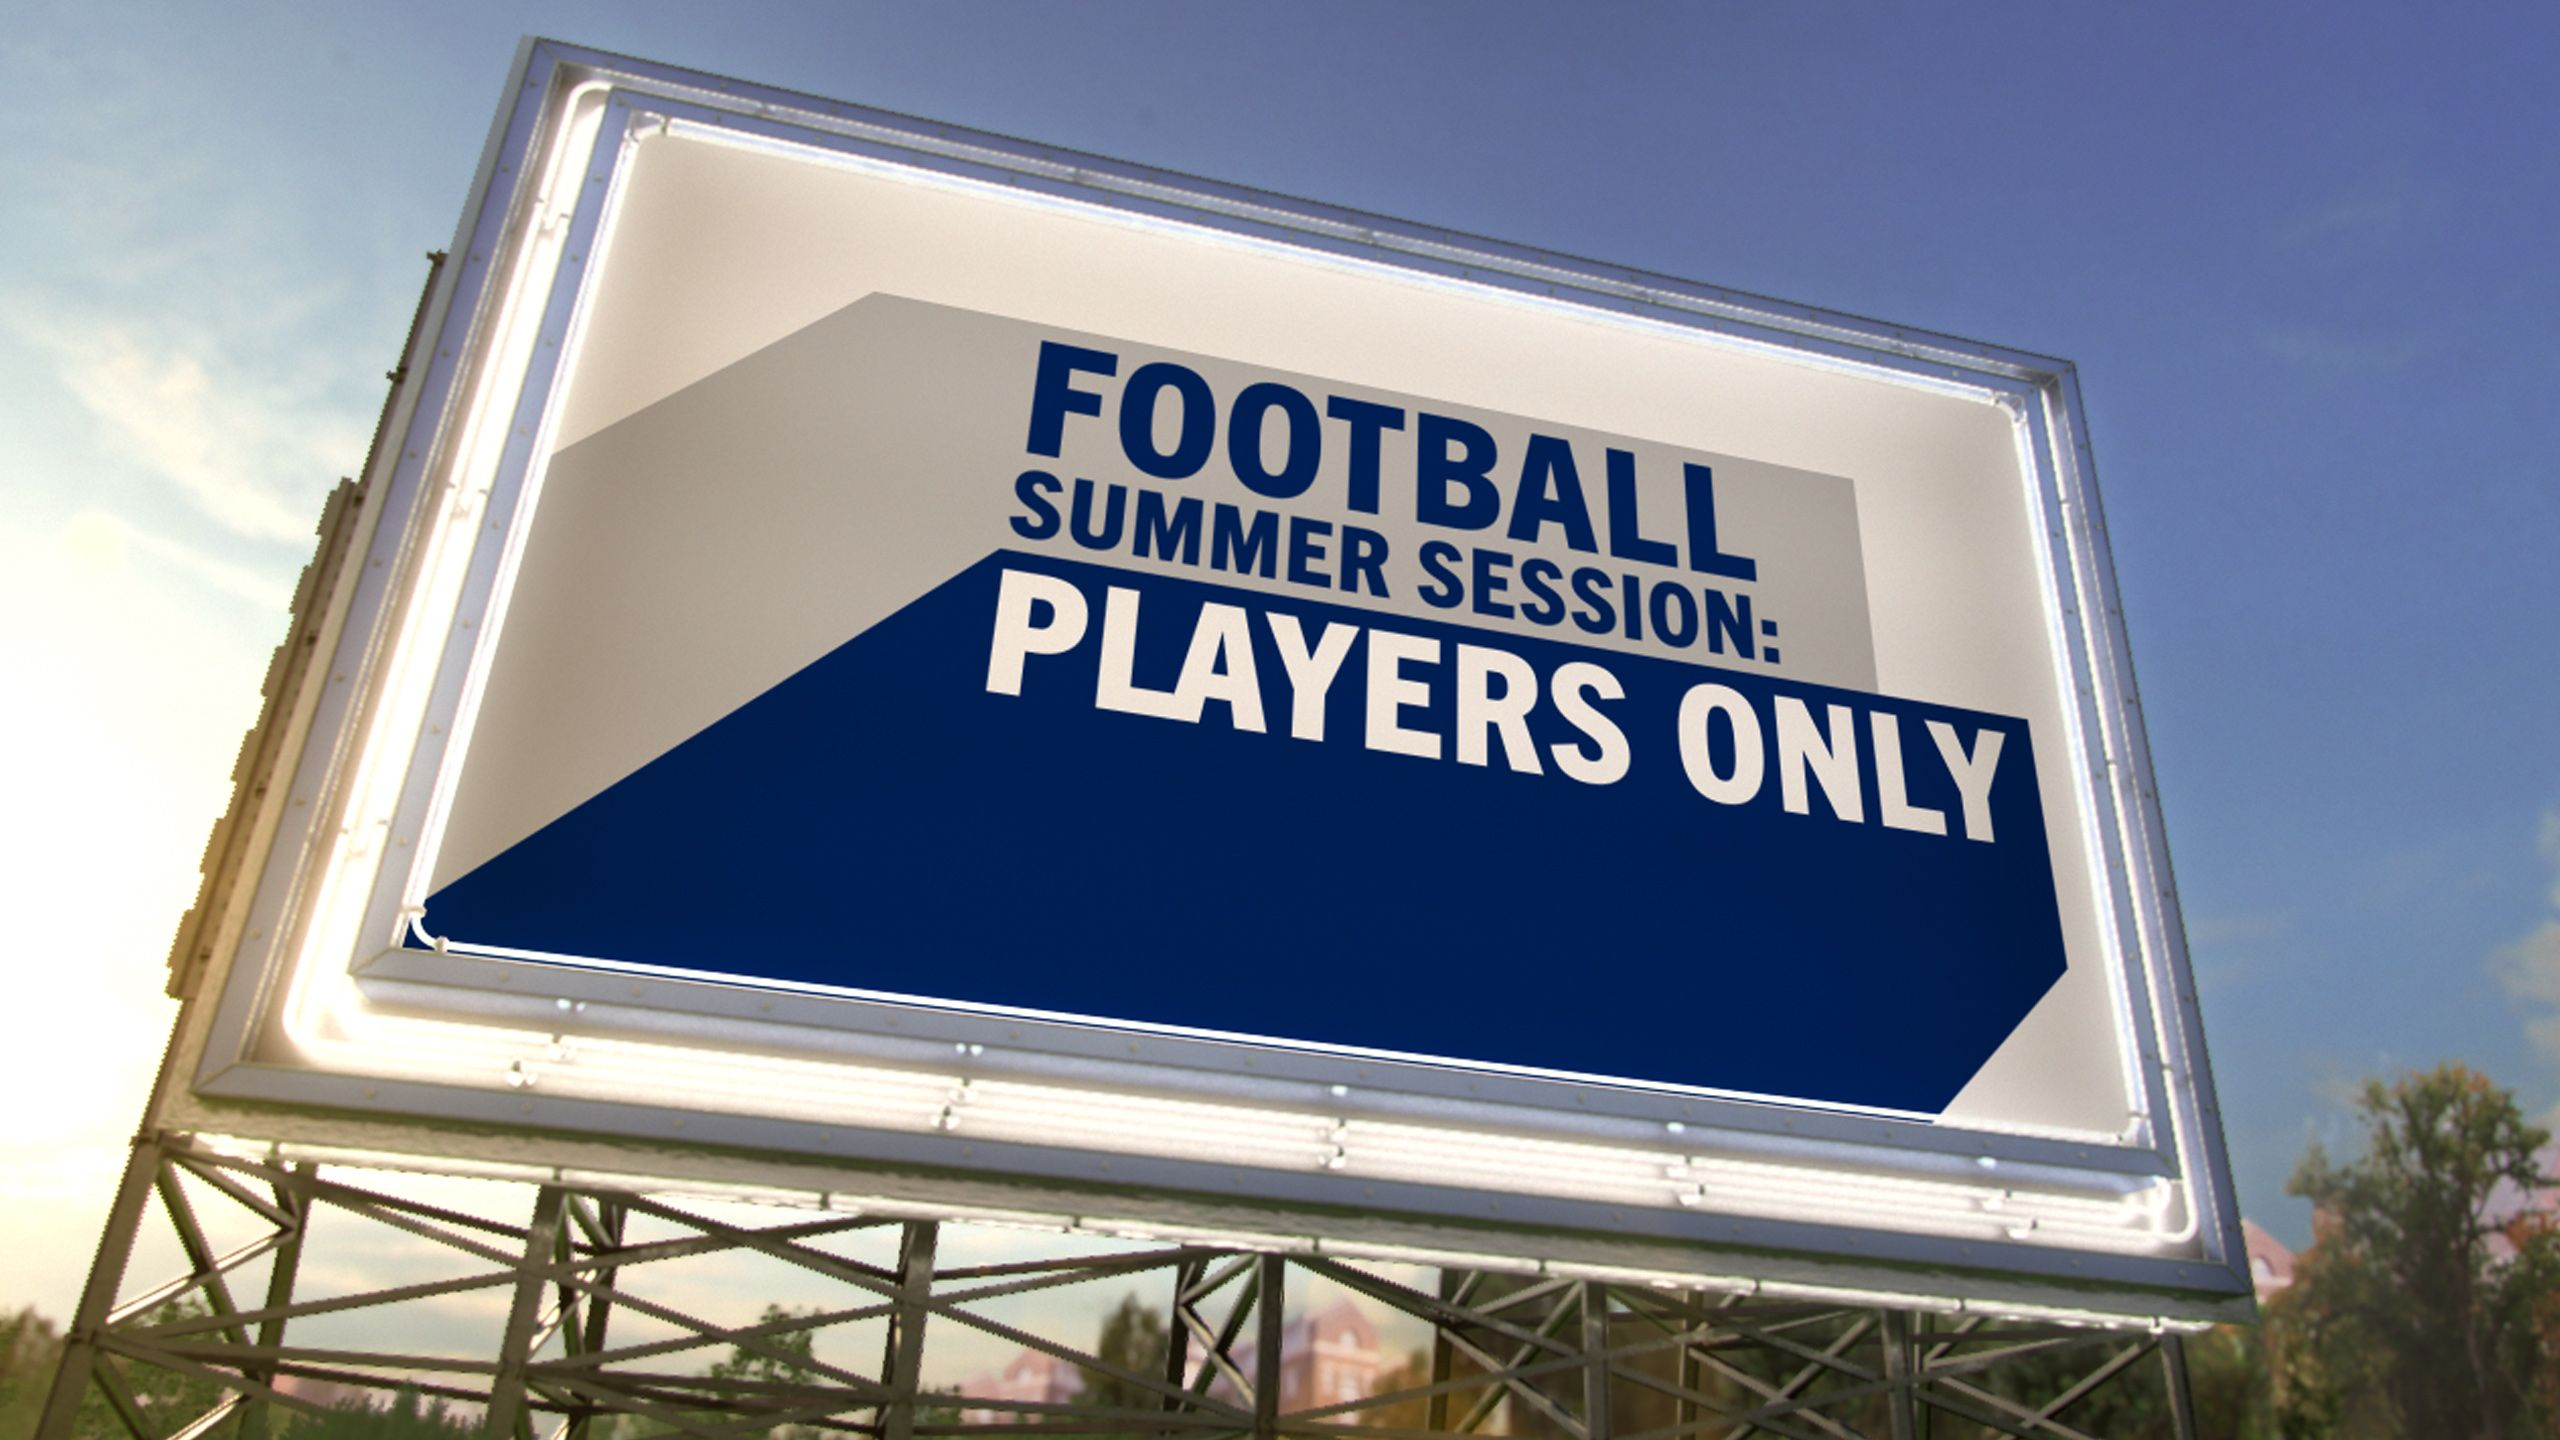 Football Summer Session: Players Only